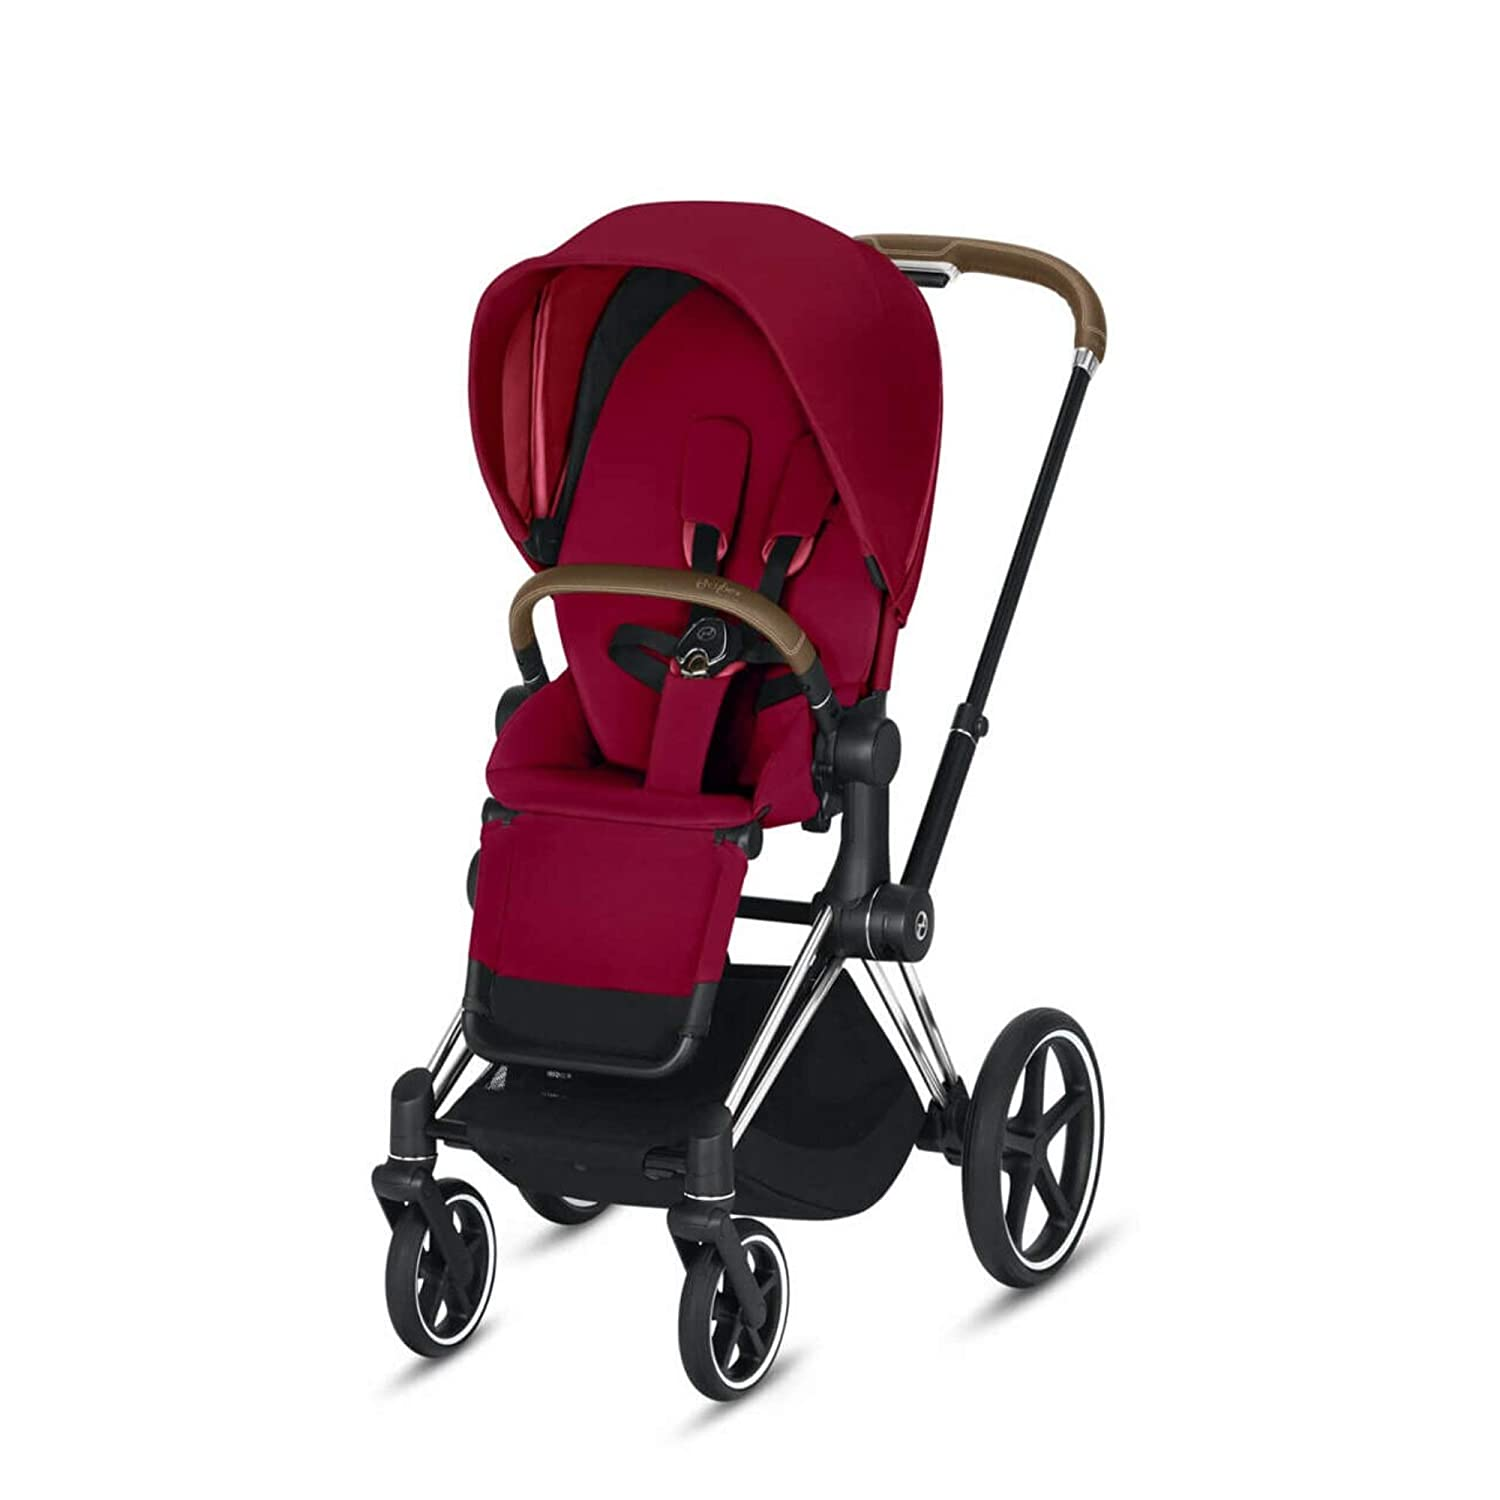 Cybex Priam 3 Complete Stroller, One-Hand Compact Fold, Reversible Seat, Smooth Ride All-Wheel Suspension, Extra Storage, Adjustable Leg Rest, in True Red Seat with Chrome/Brown Frame